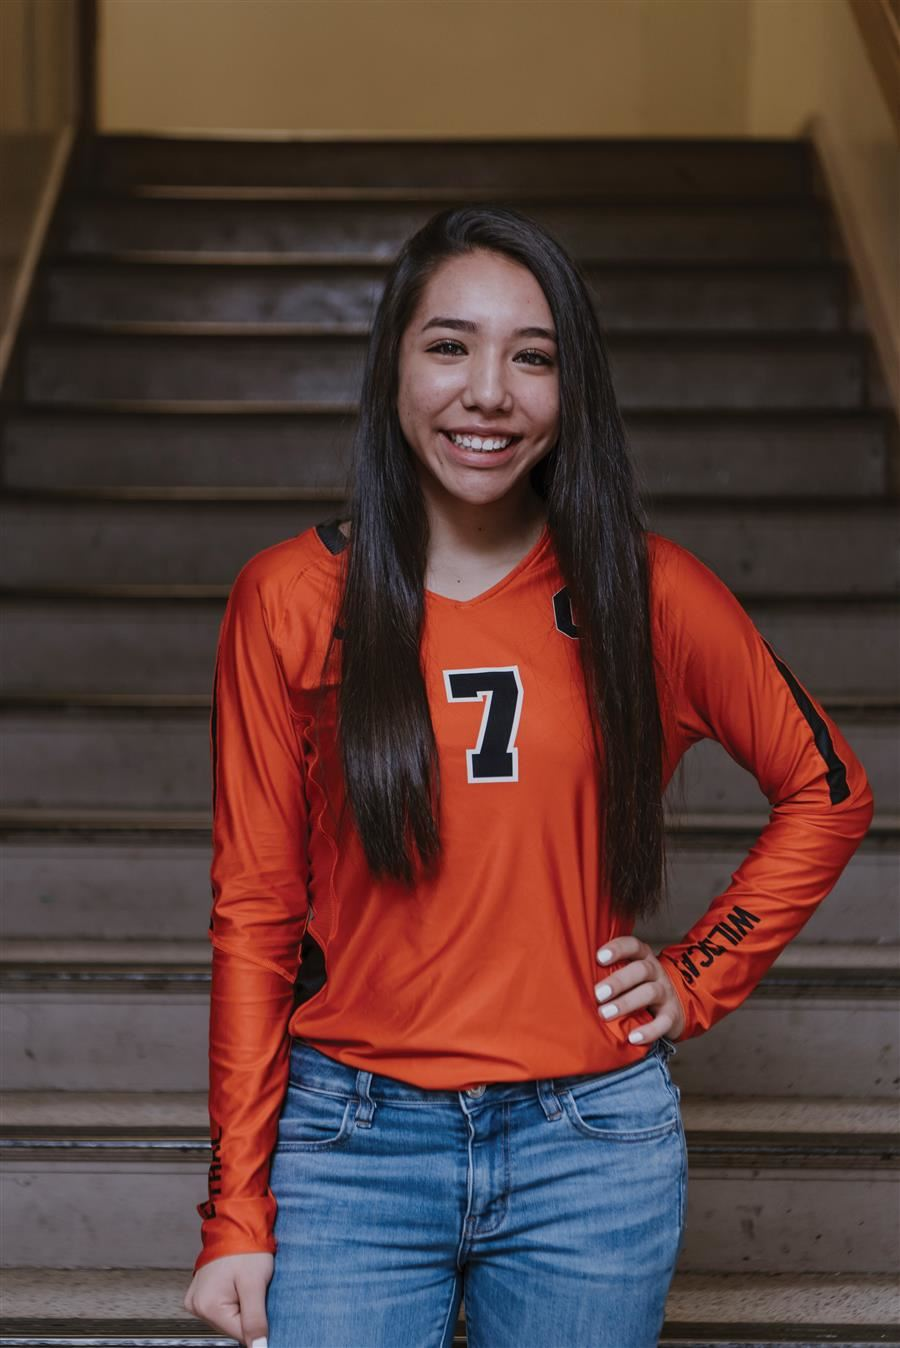 D6 Athlete of the Week Micaela Hidalgo